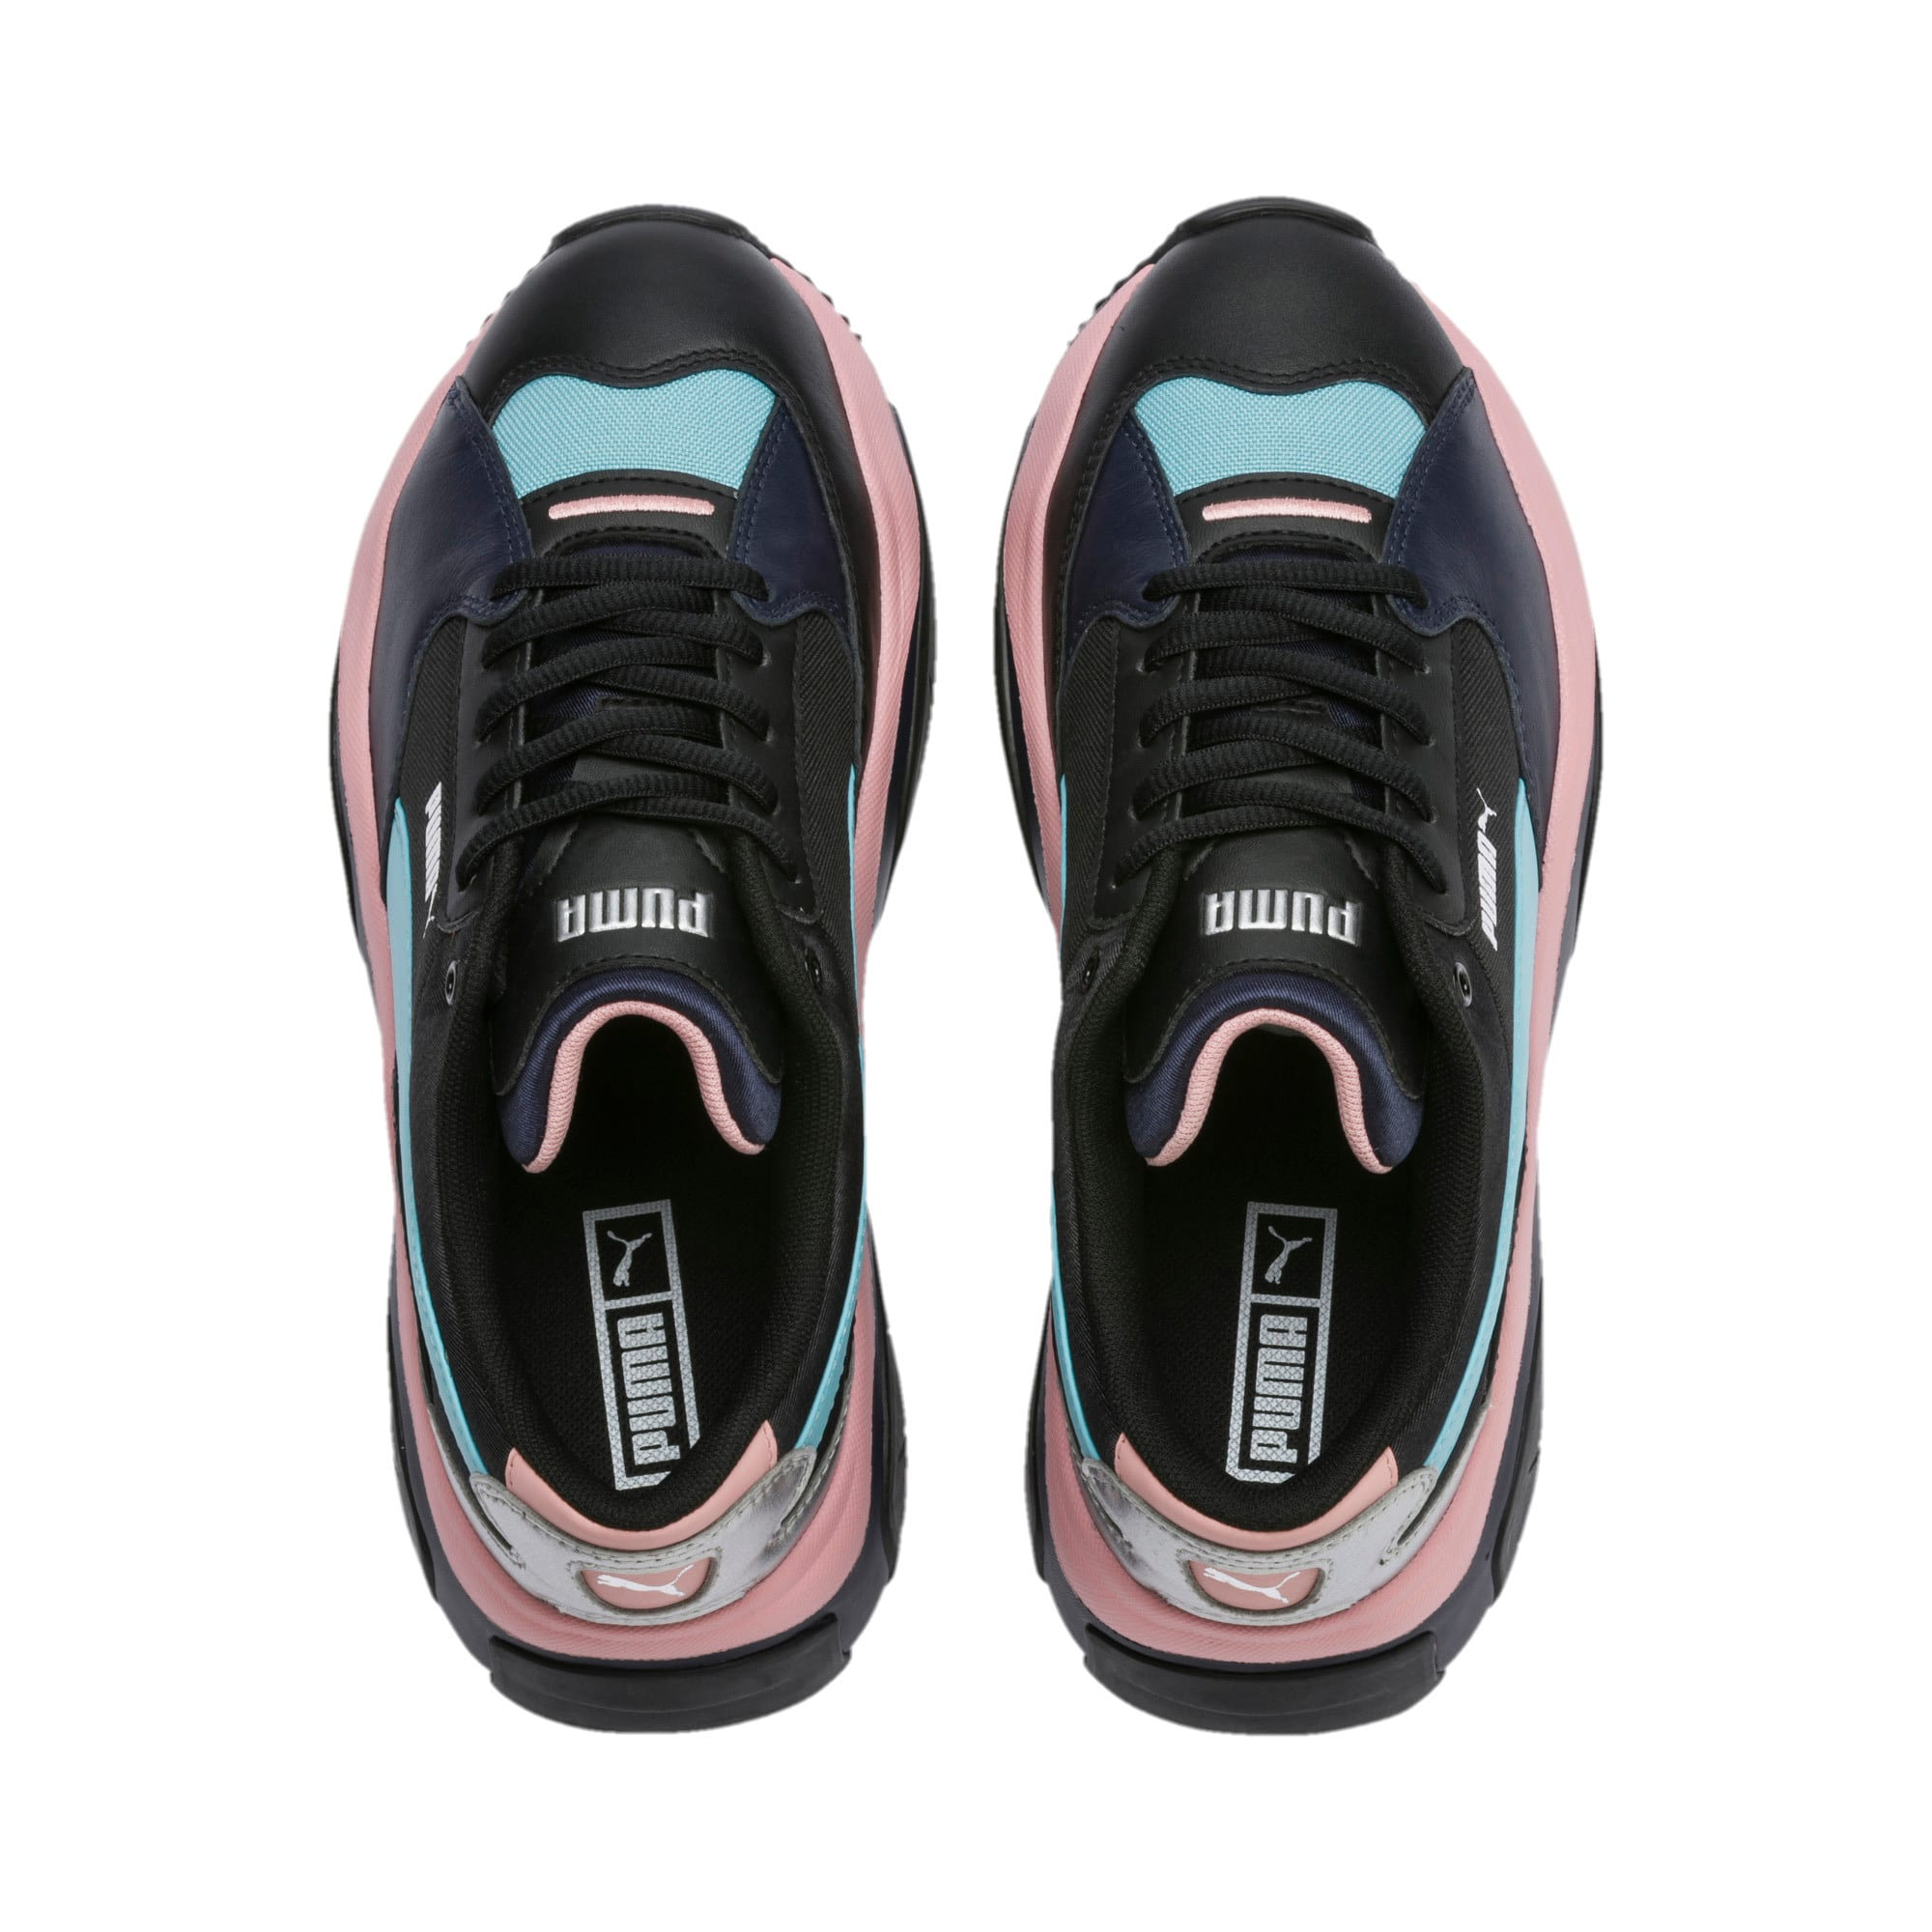 Thumbnail 7 of STORM.Y Metallic Women's Trainers, Puma Black, medium